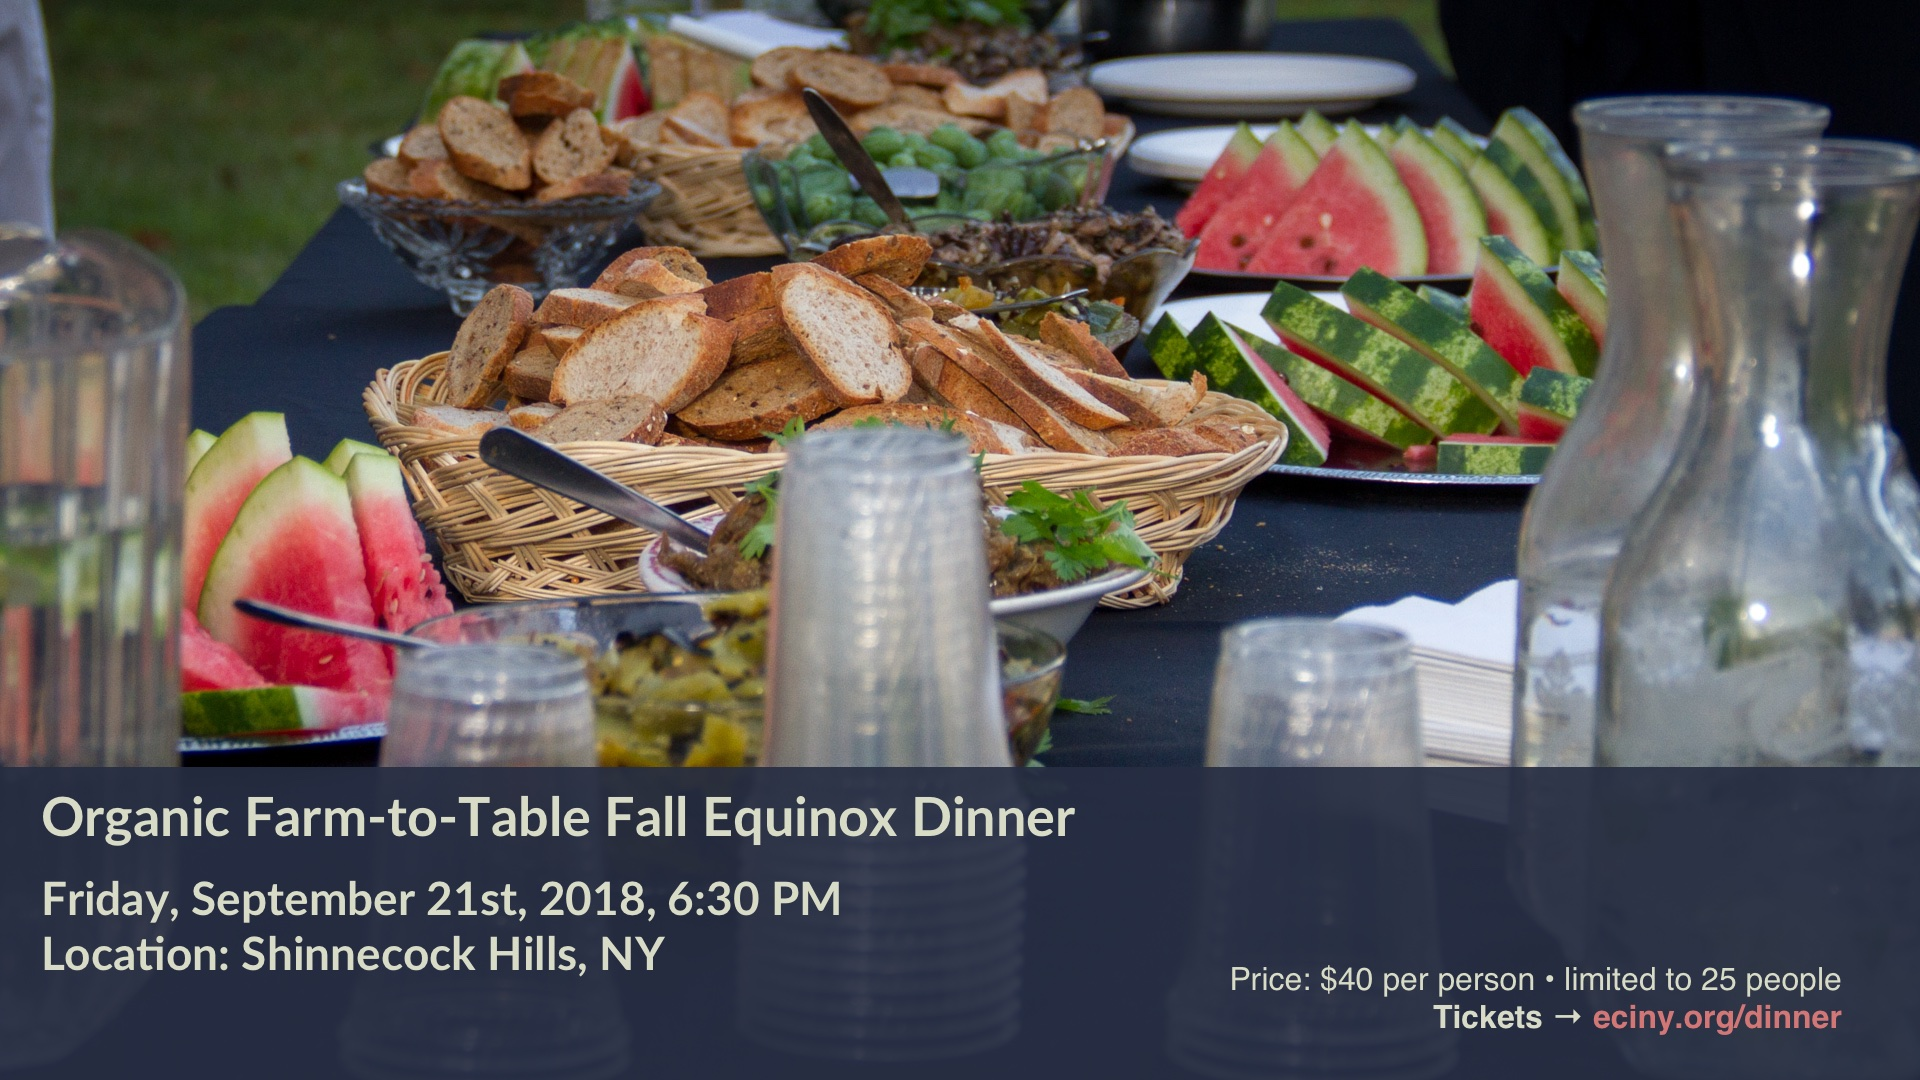 Organic Farm-to-Table Fall Equinox Dinner - Sep 21, 2018 - FB cover 1920x1080.jpg